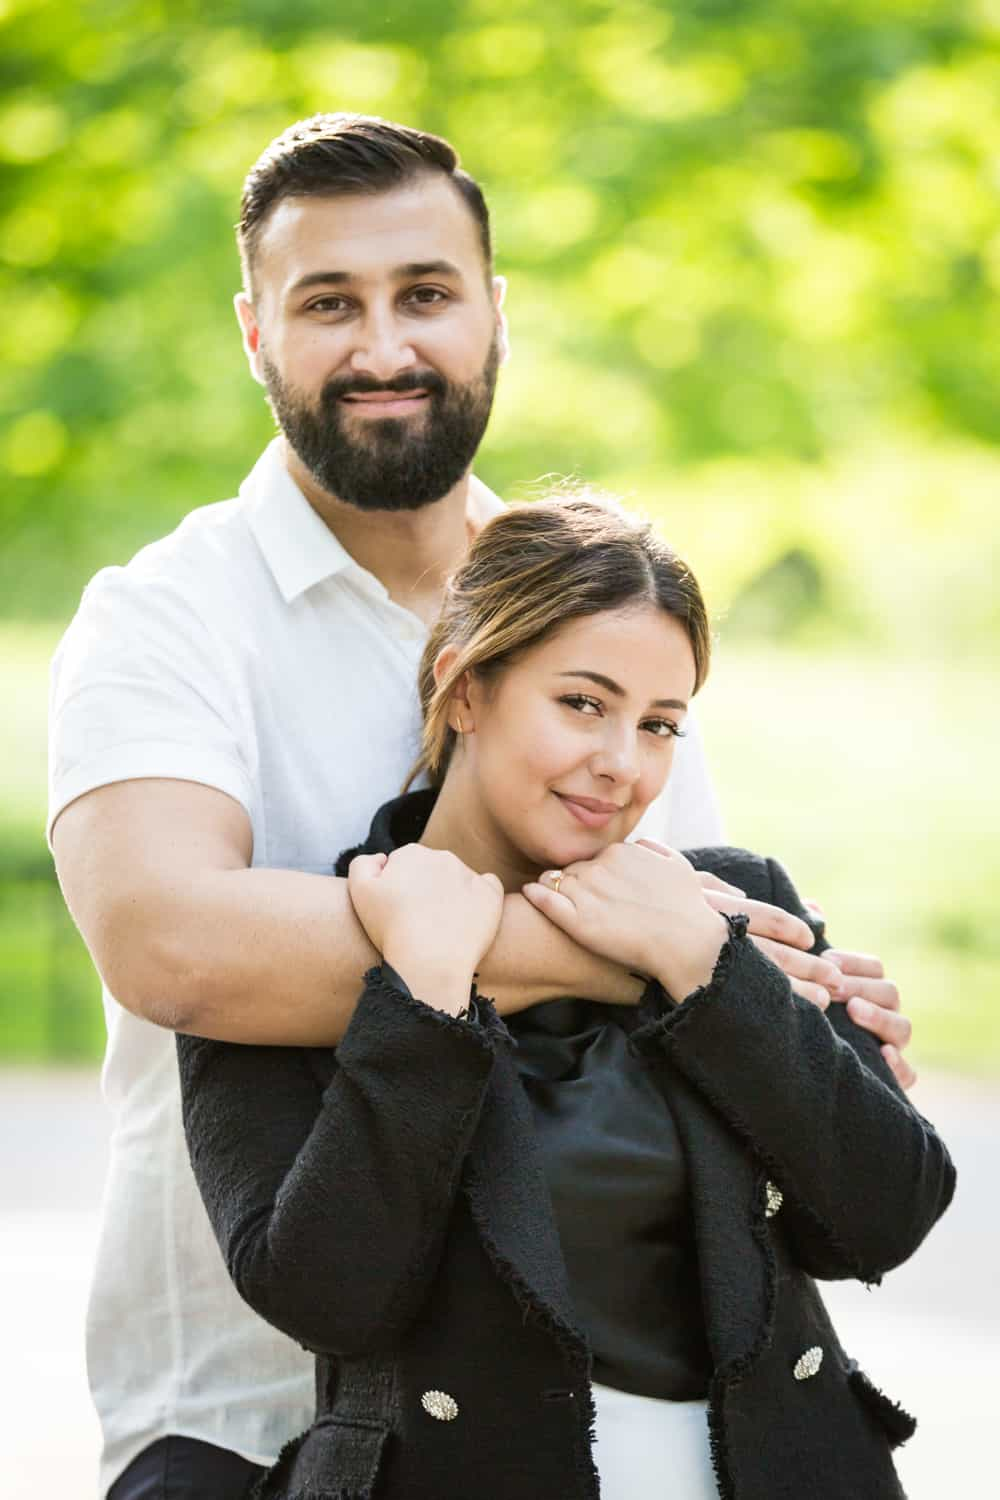 Couple hugging on the Mall in Central Park